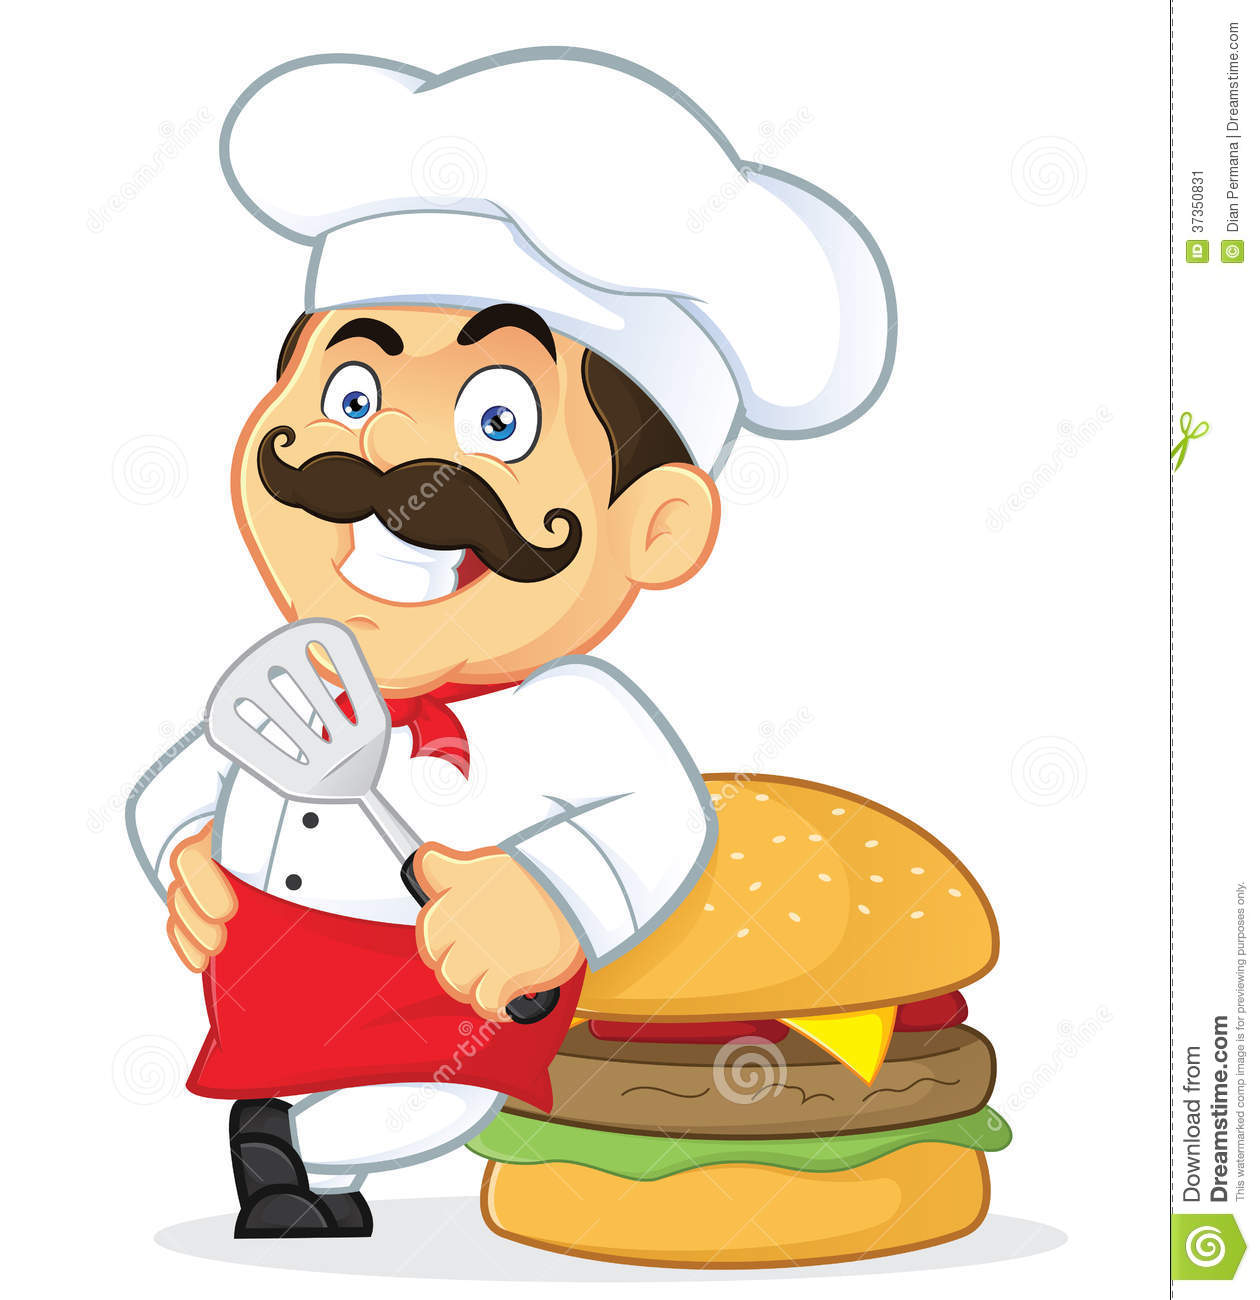 Chef Clipart & Chef Clip Art Images.